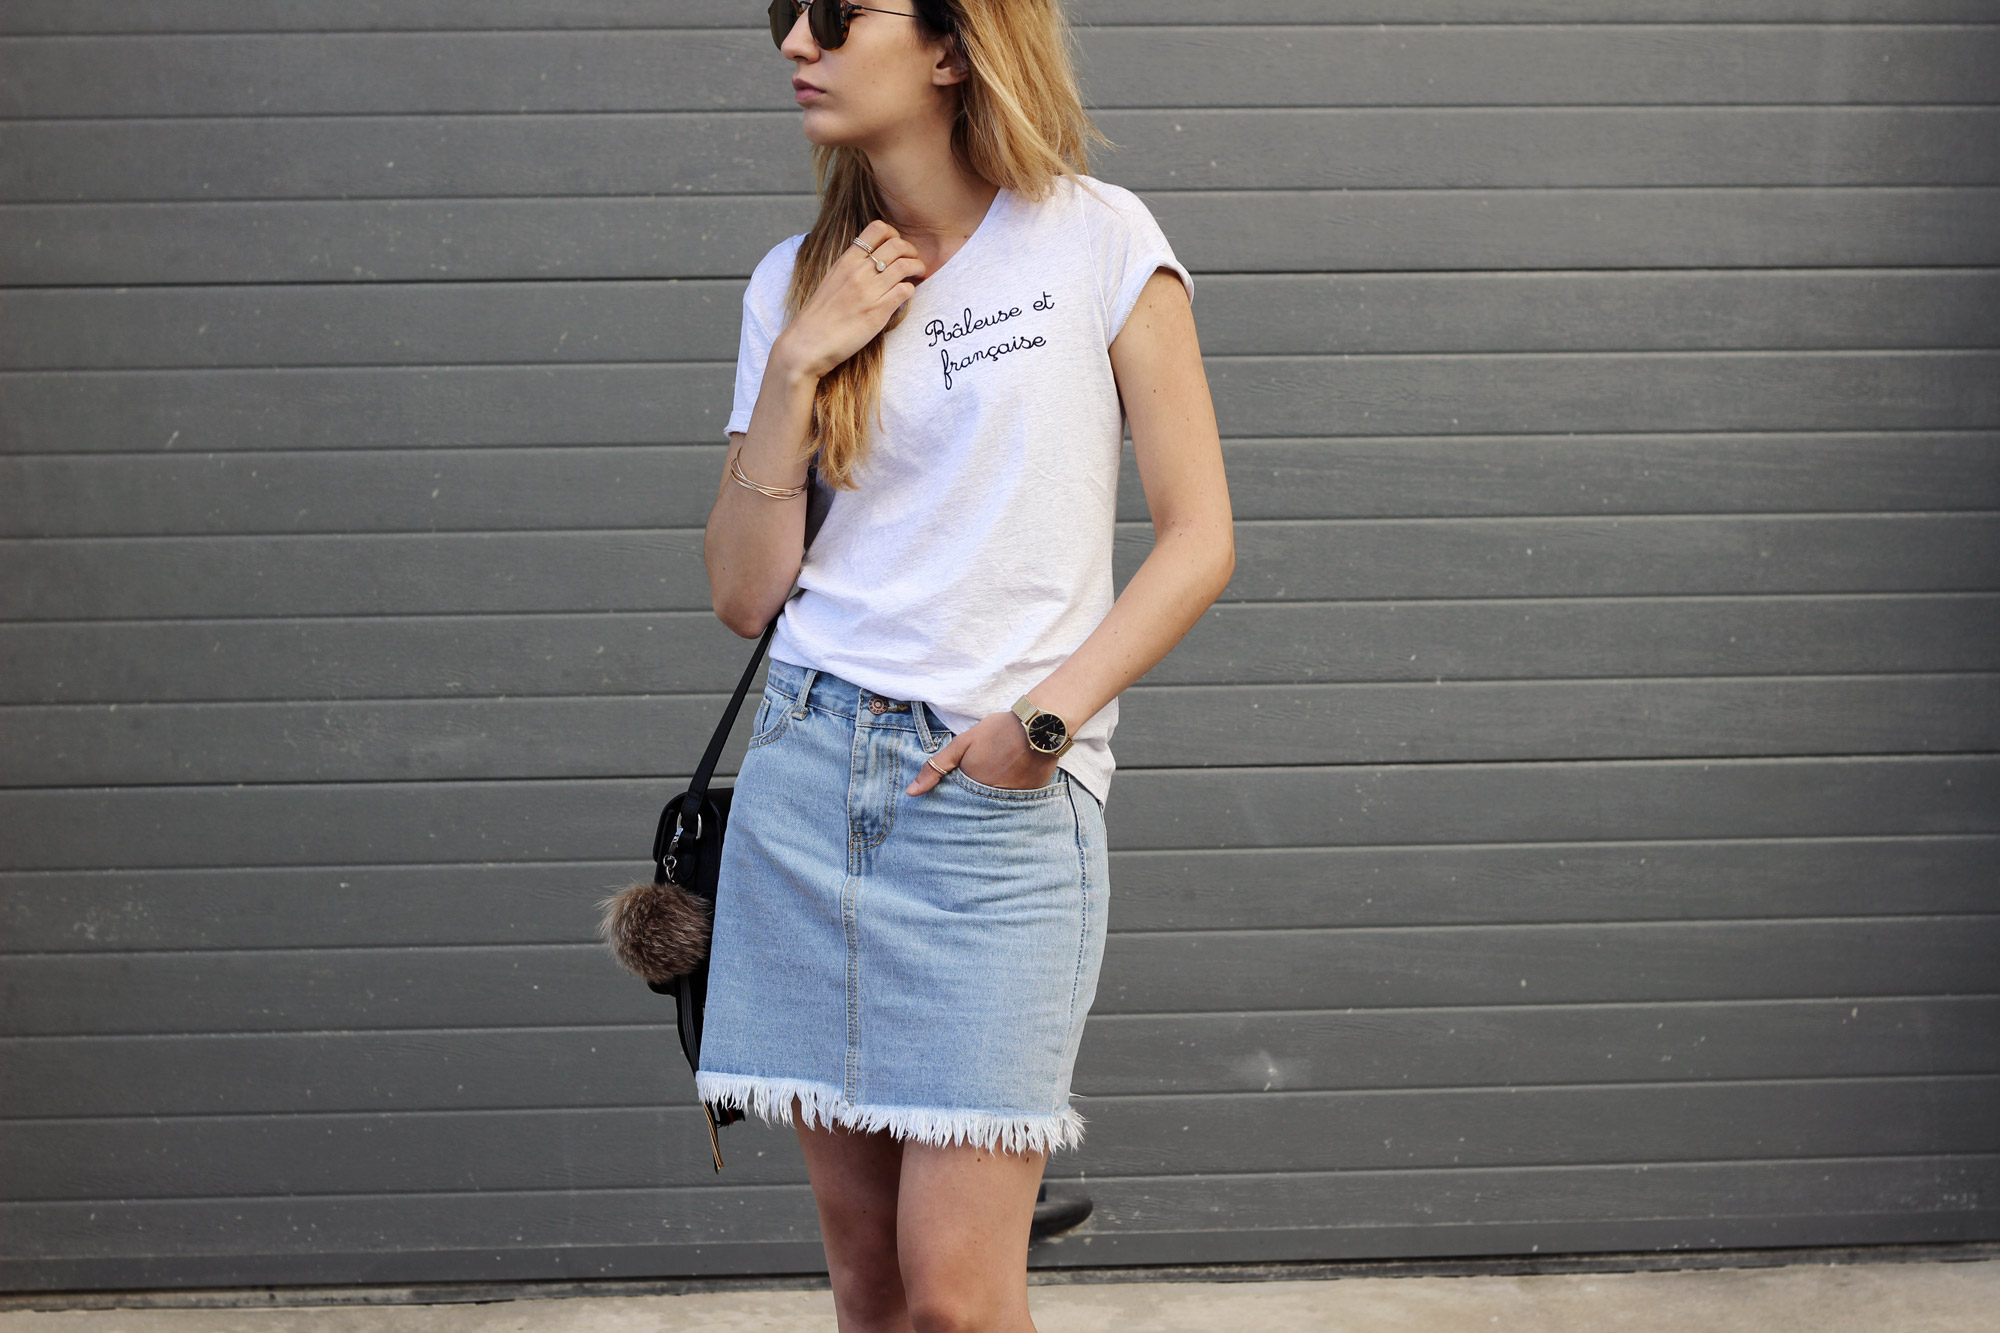 blog-mode-look-jupe-tshirt-imprime